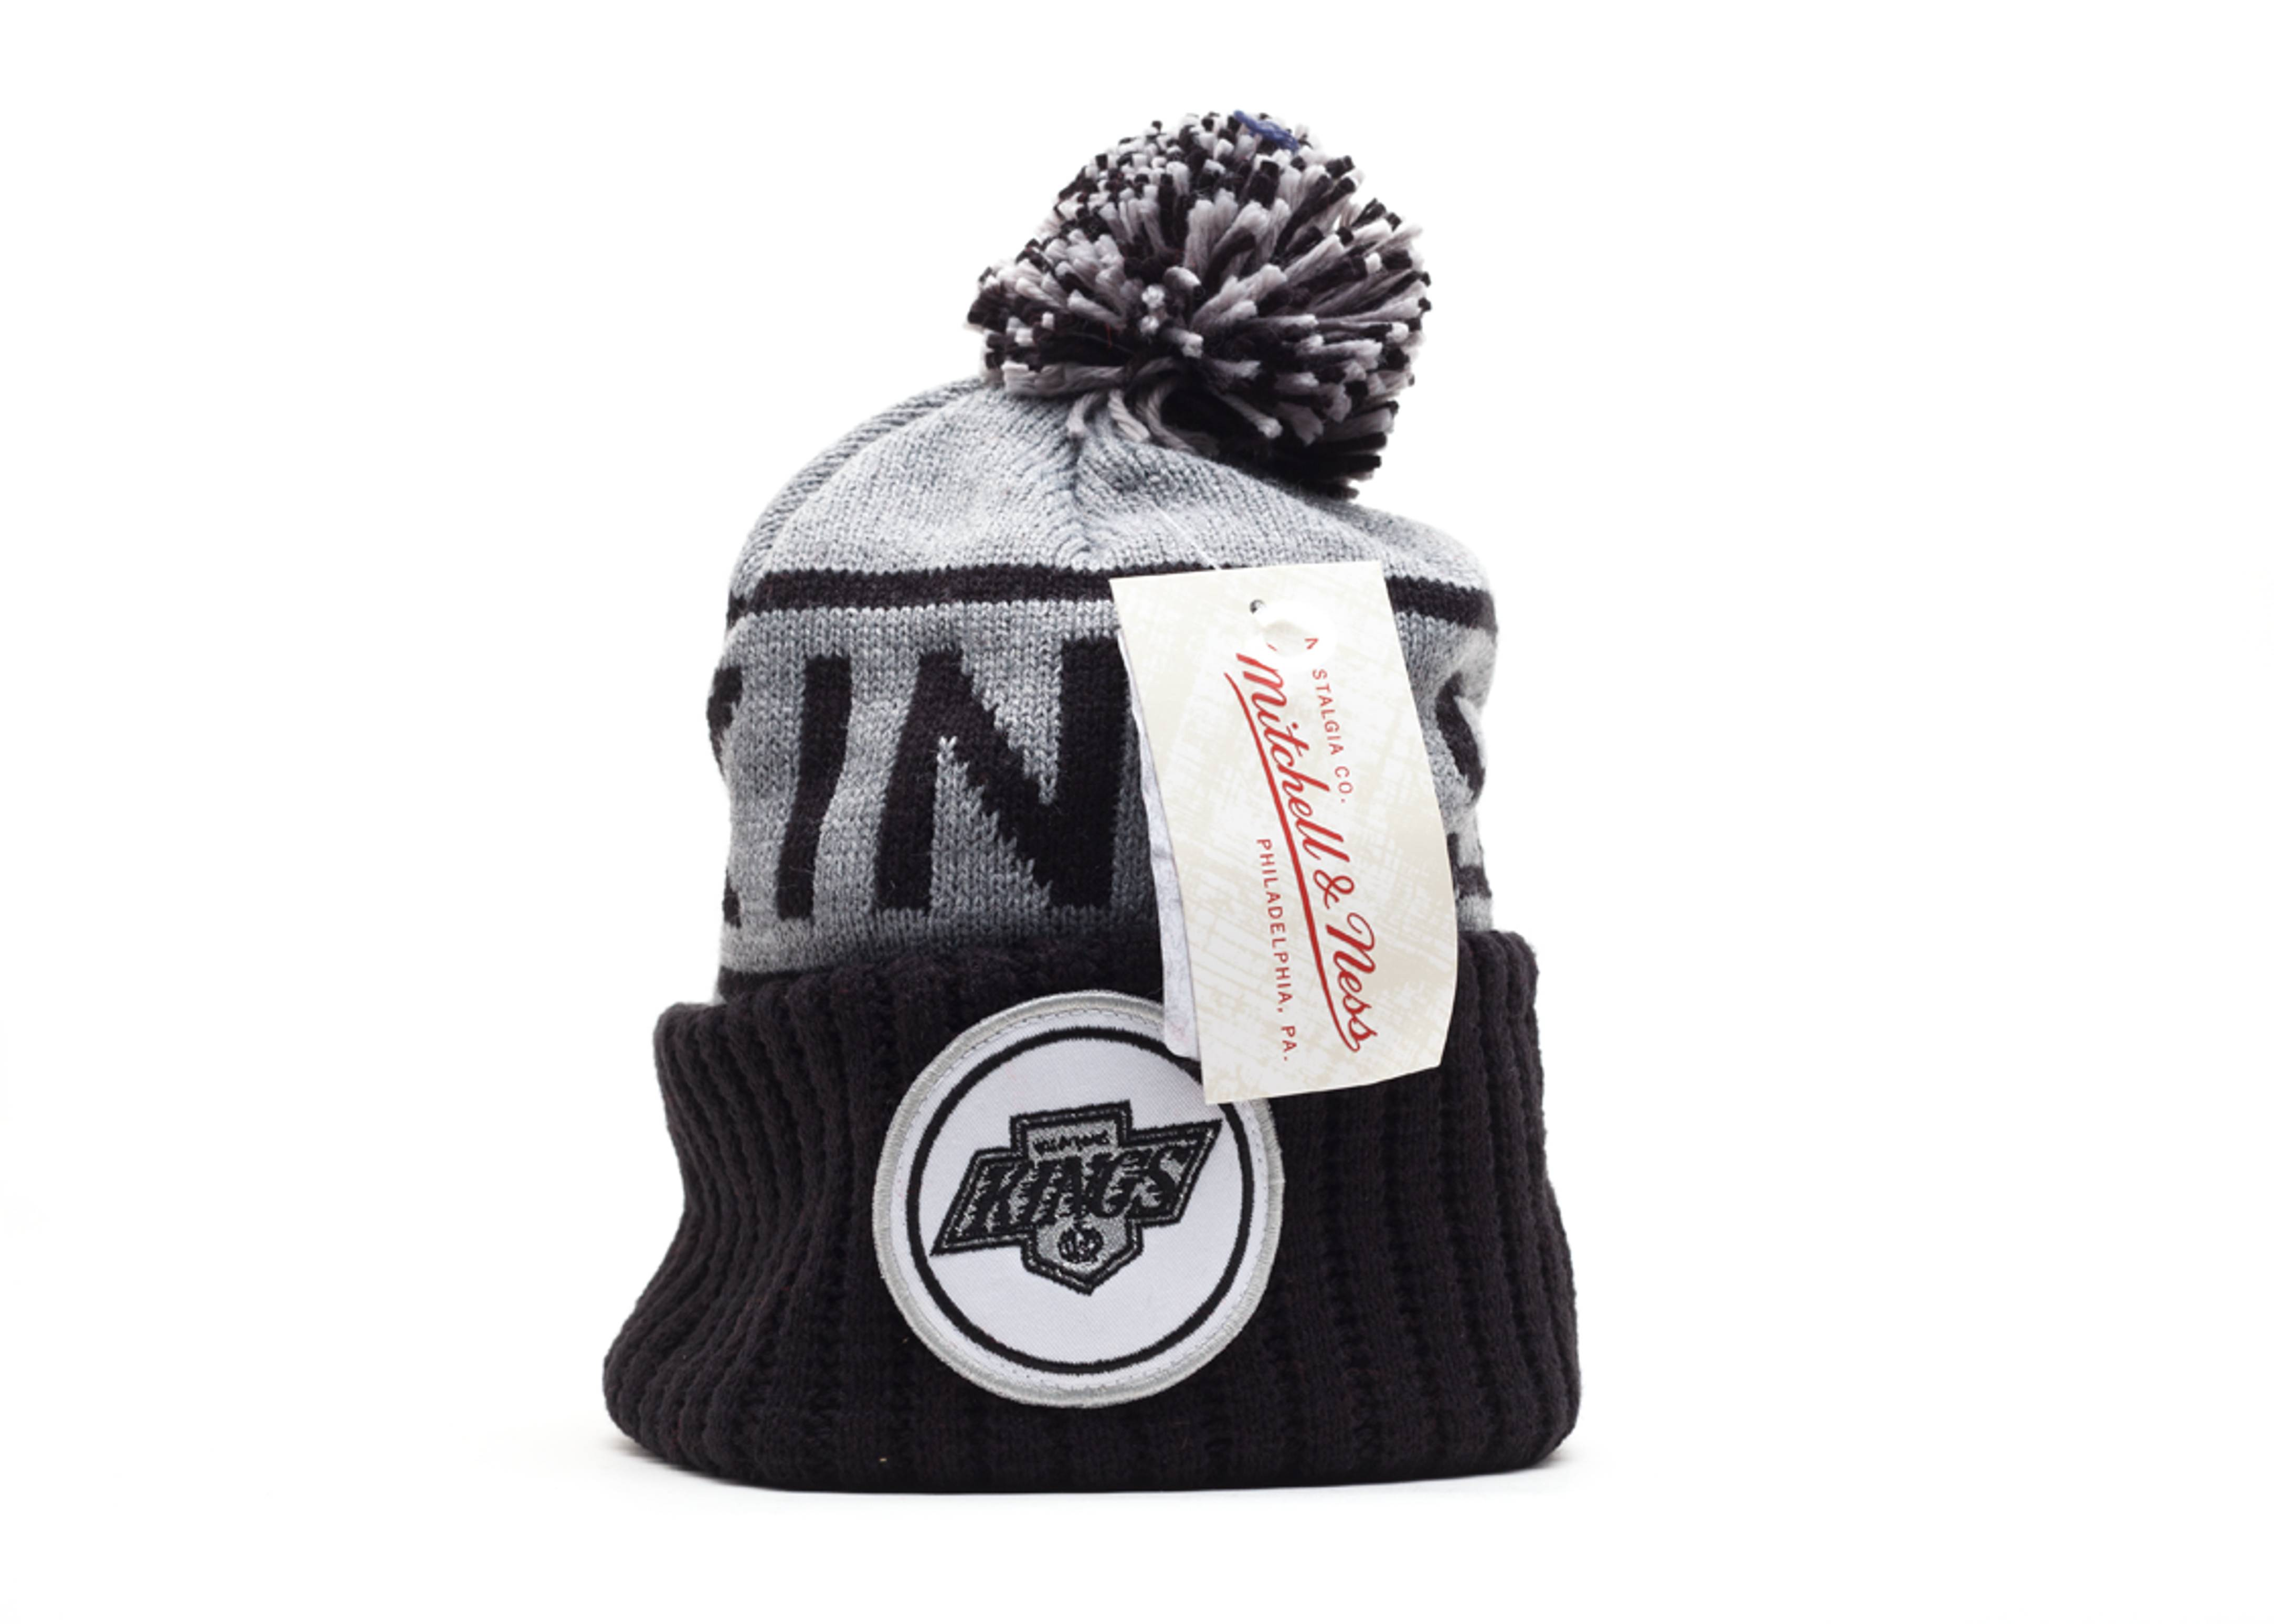 los angeles kings cuffed pom knit beanie